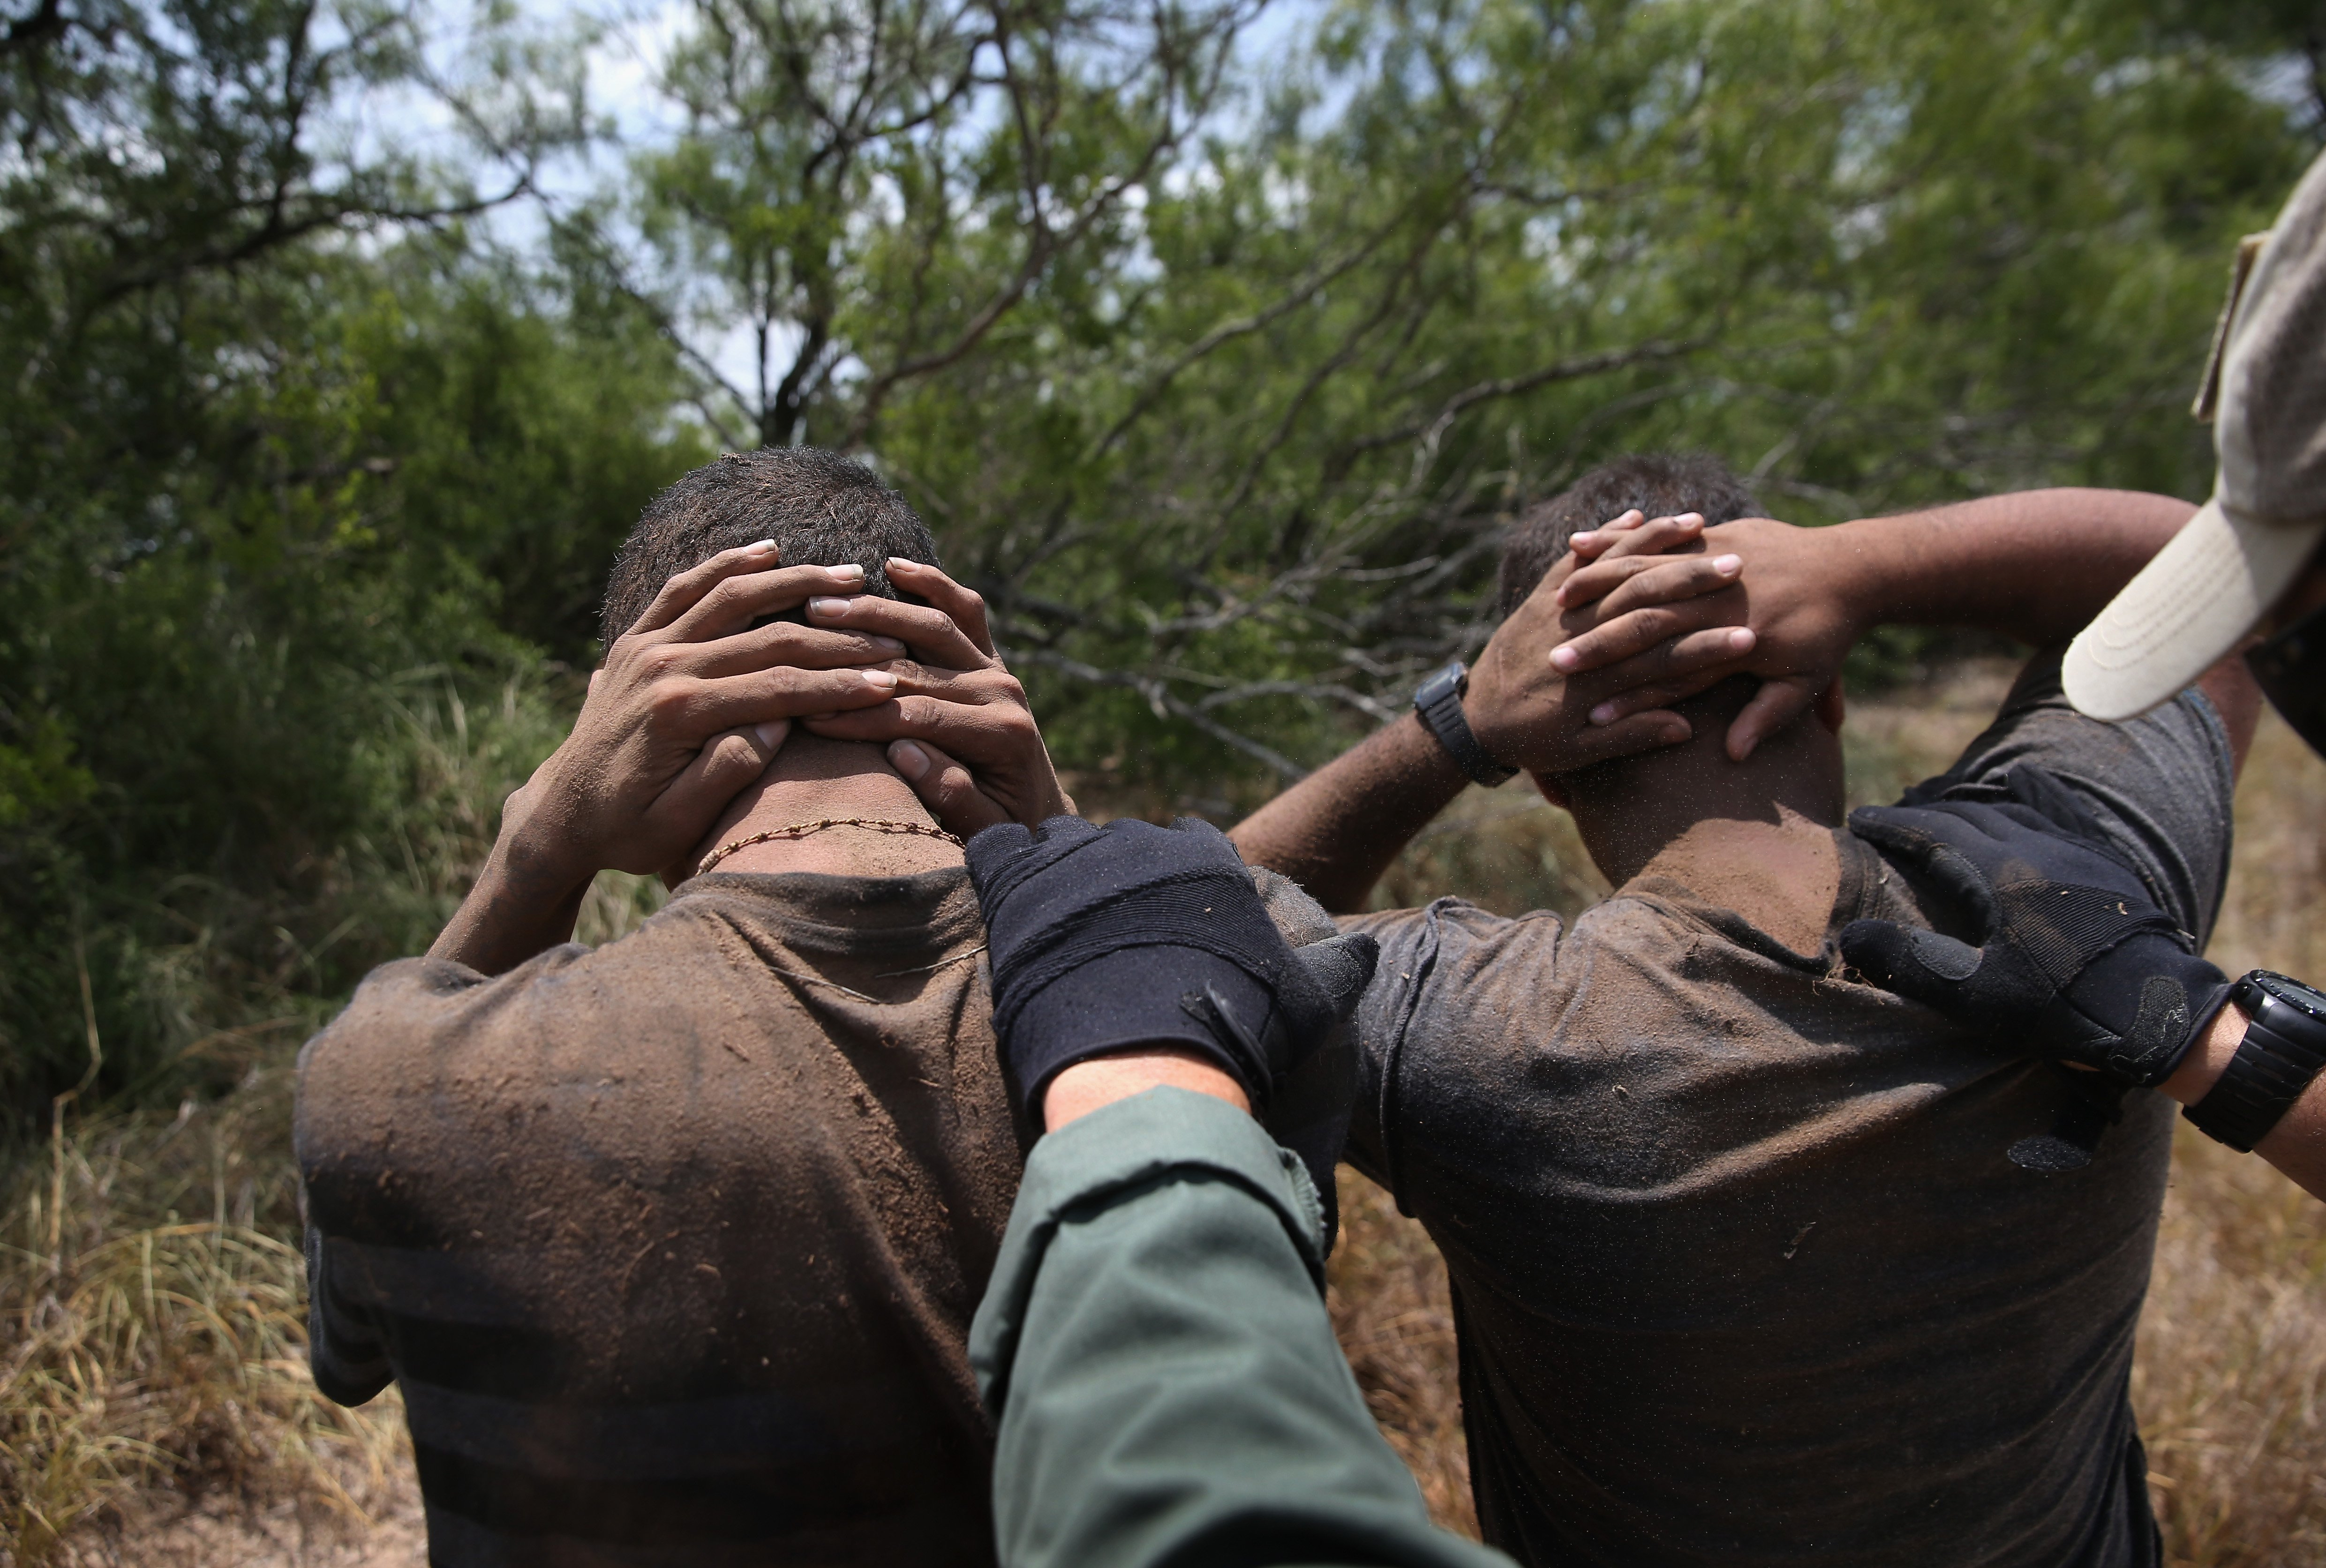 U.S. Border Patrol agents detain undocumented immigrants in dense brushland some 60 miles north of the U.S. Mexico border in Brooks County, Texas on July 23, 2014.